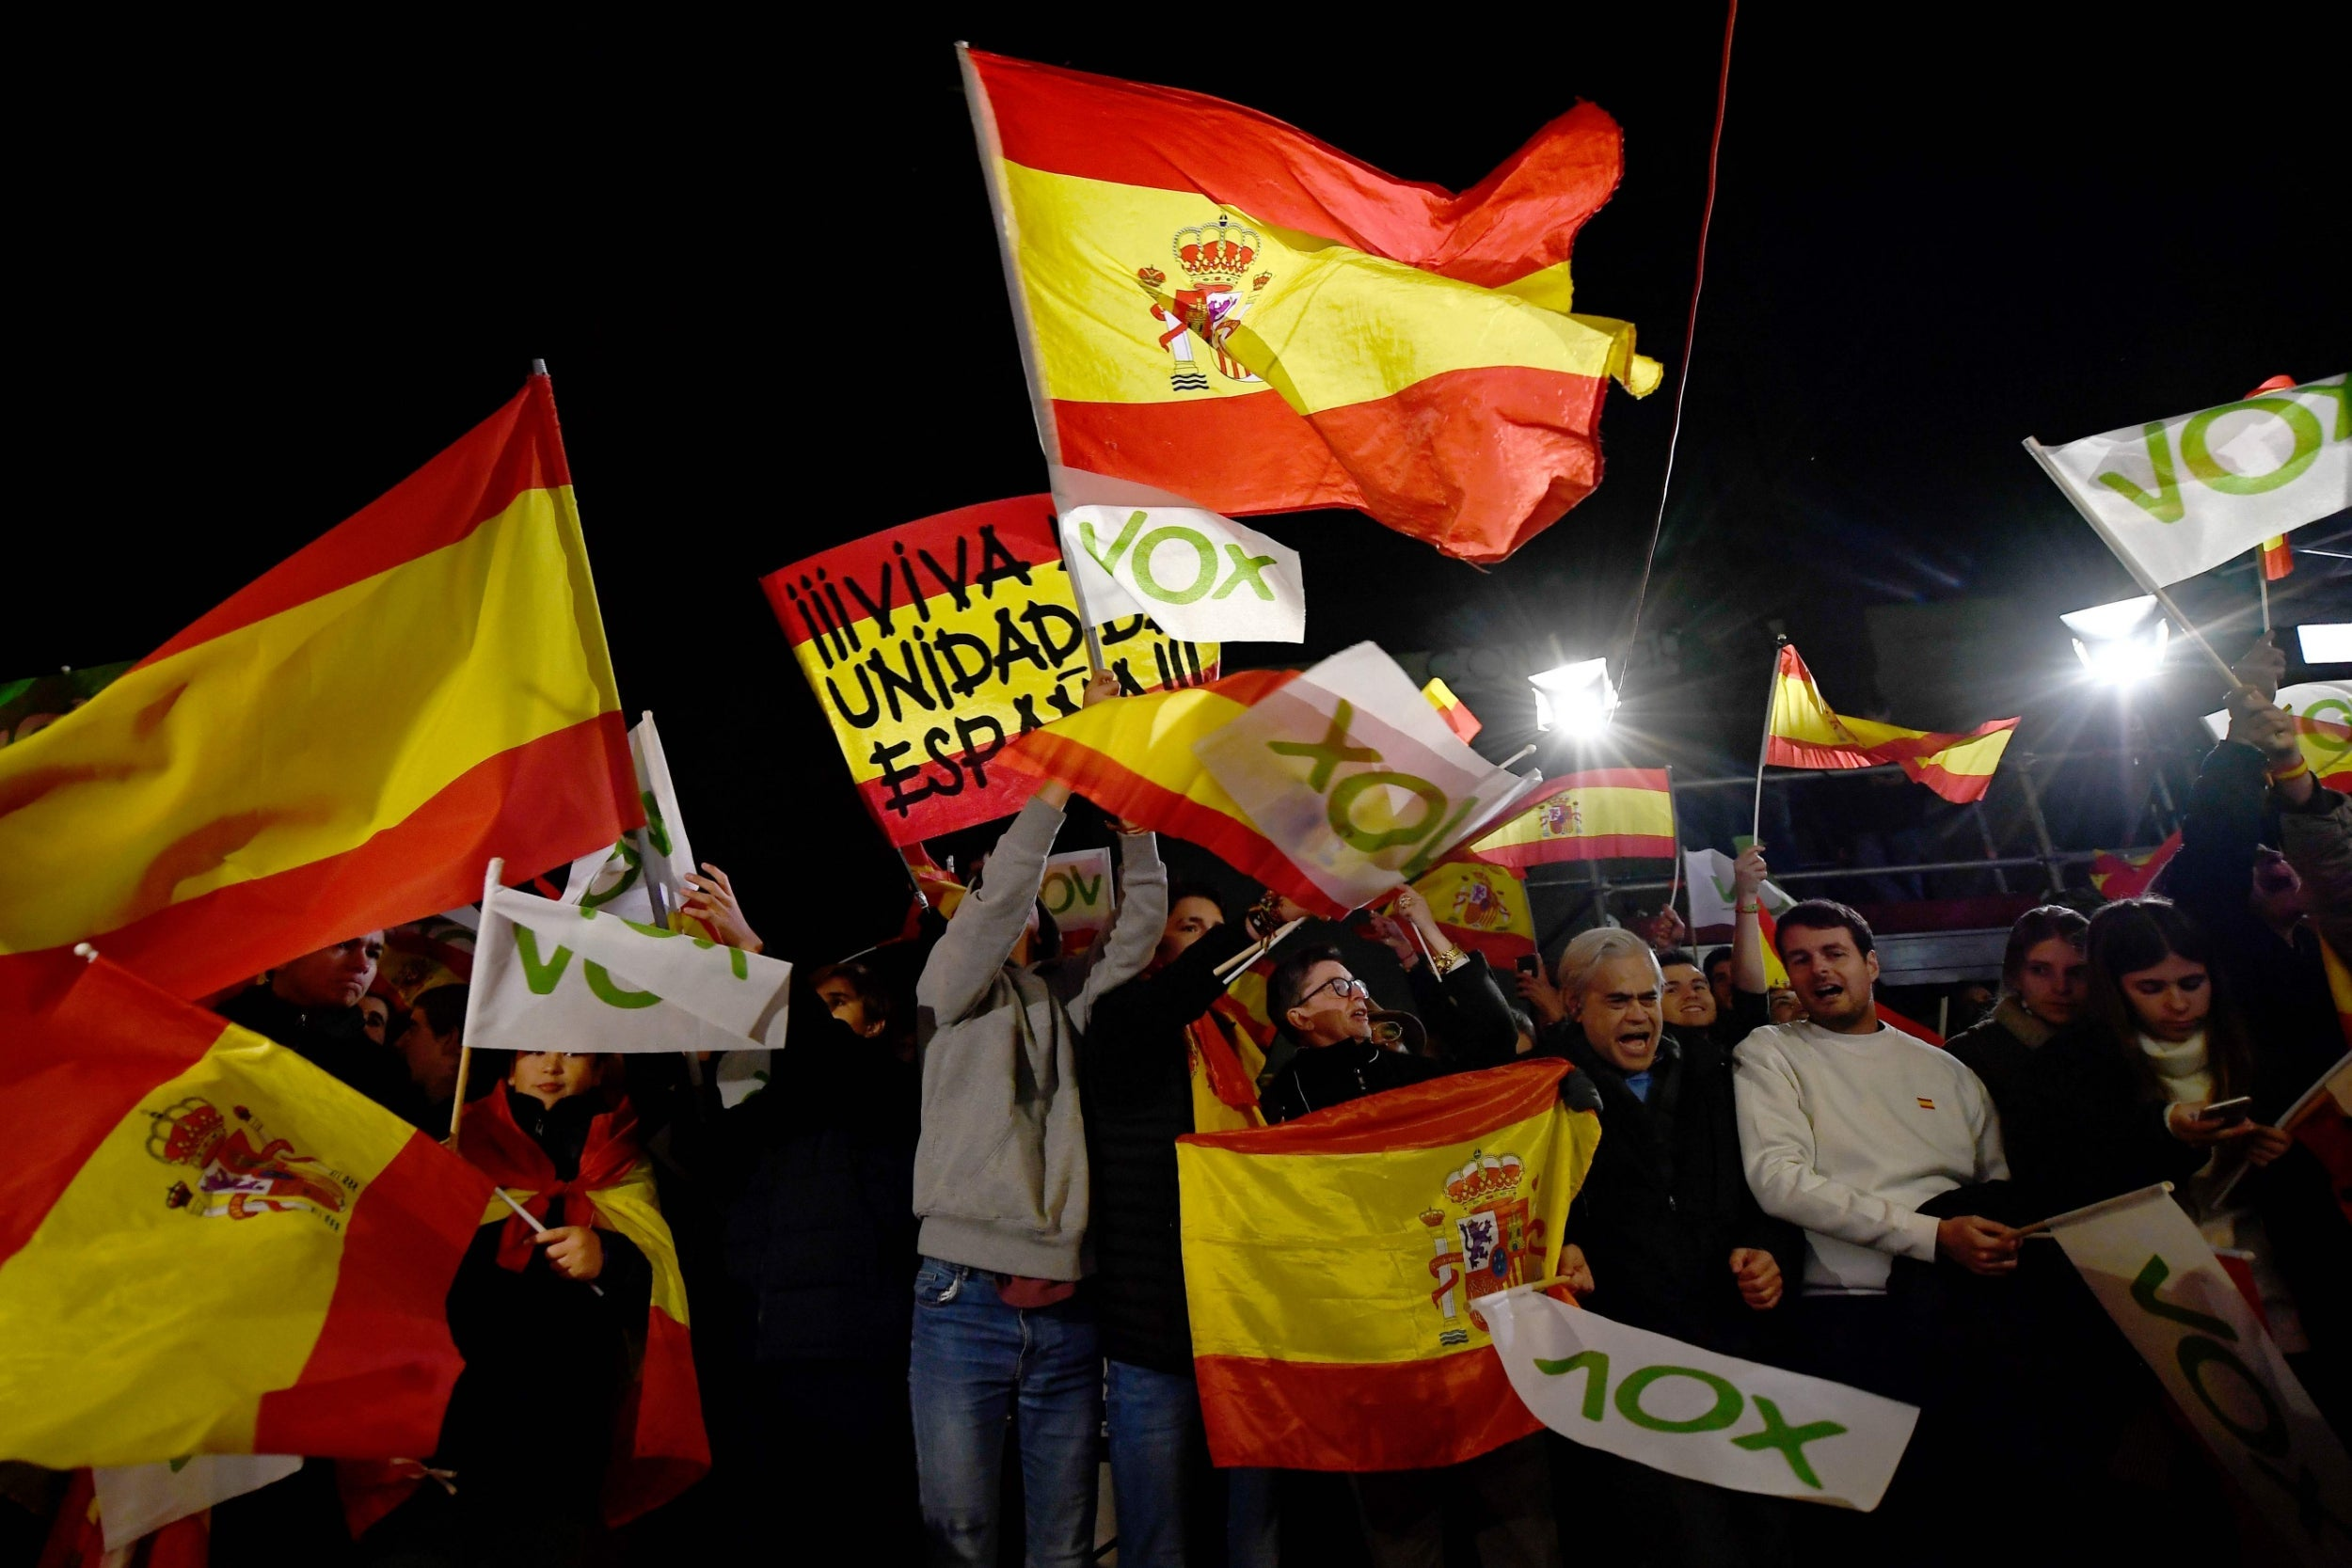 Wristbands and a sense of belonging: How Spain's far-right Vox party have entered mainstream